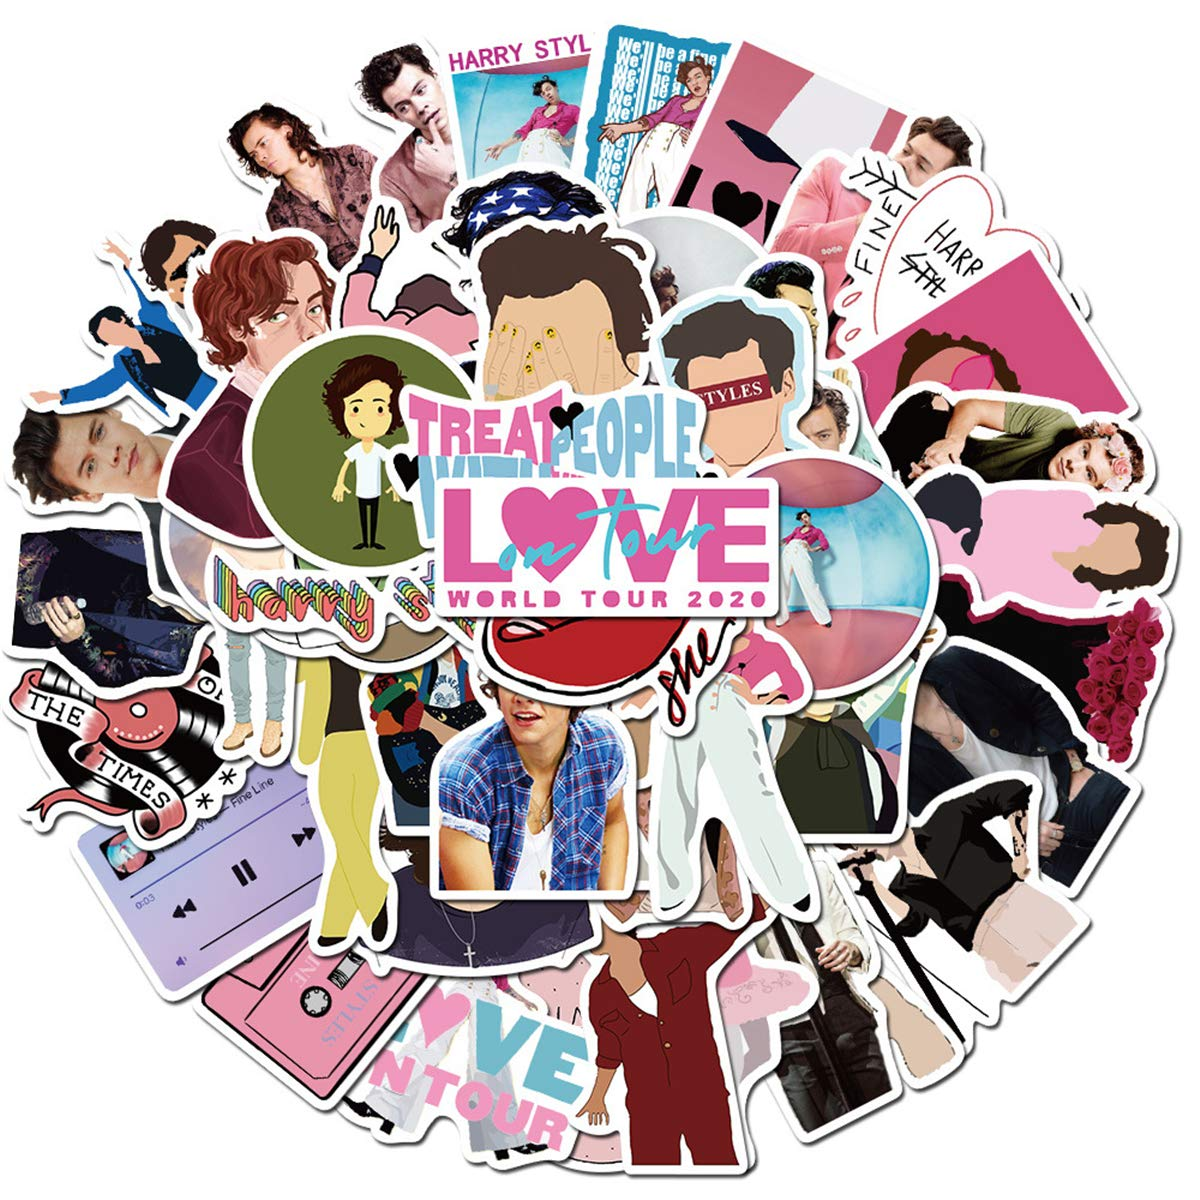 Harry Edward Styles Stickers 50pcs Popular English Singer Harry Edward Styles Vinyl Decals for Laptop Water Bottle Luggage Snowboard Bicycle Skateboard for Kids Teens Adults Fans(Harry Edward Styles)